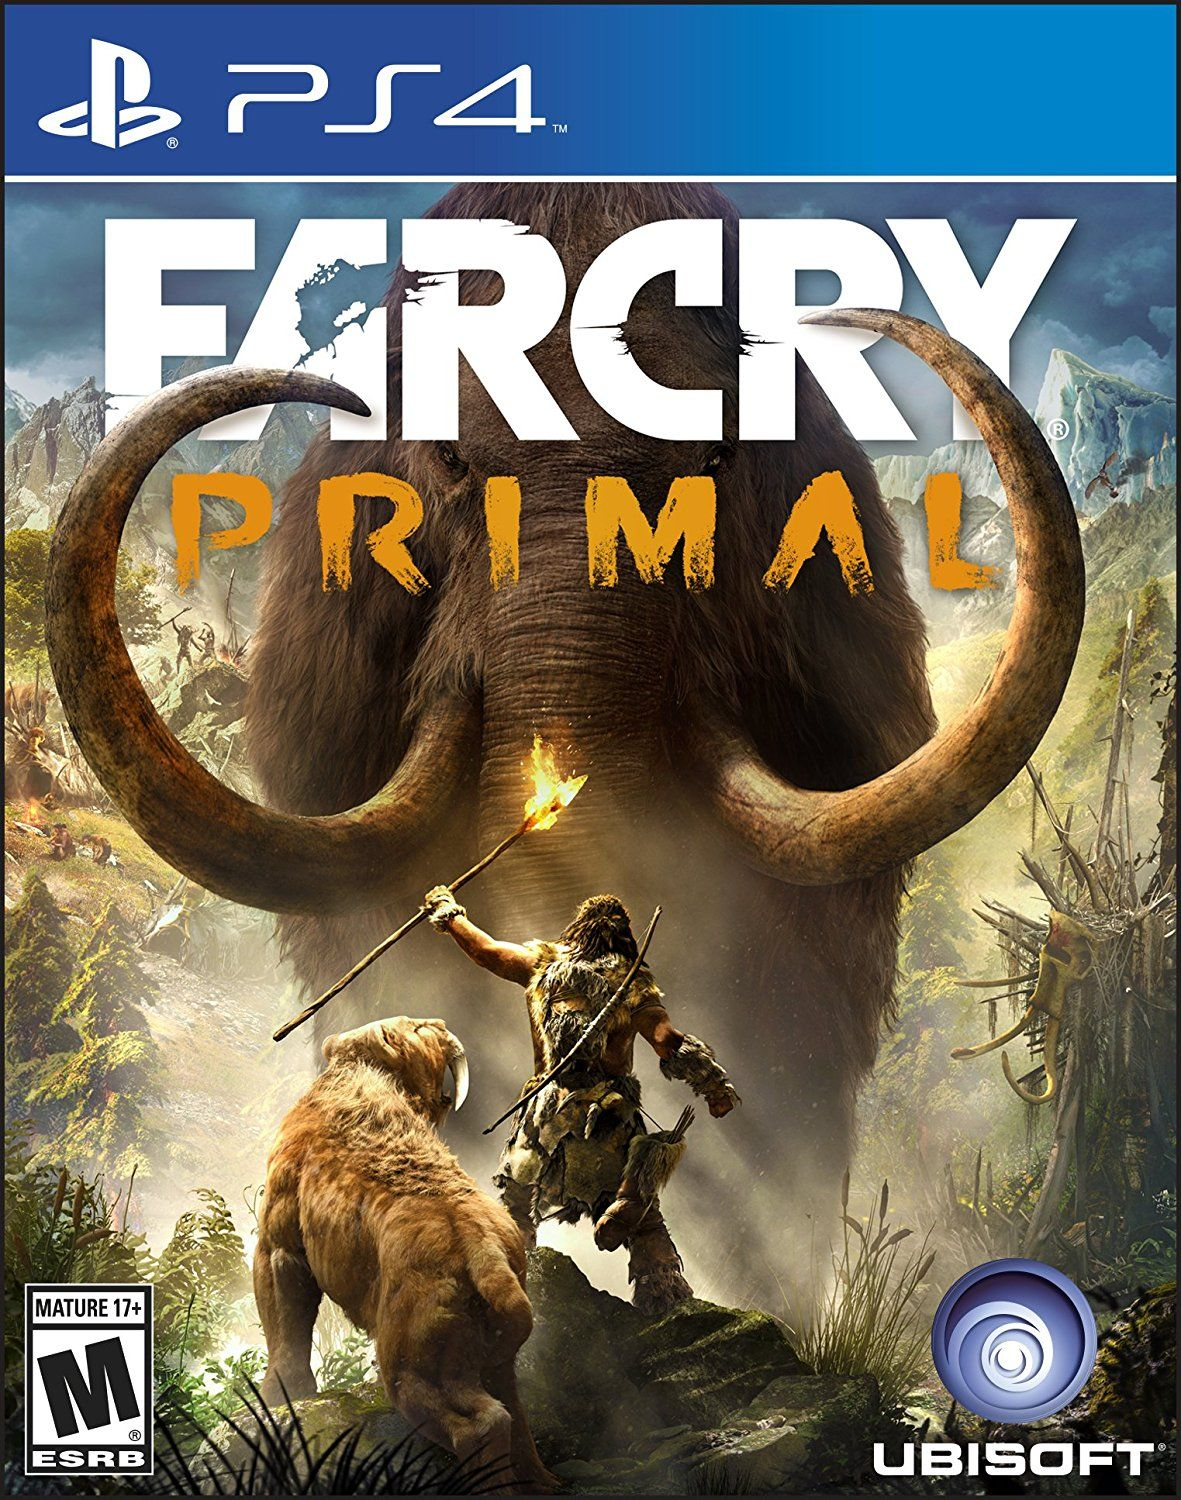 Far Cry Primal Playstation 4 Standard Edition Ubisoft Video Games Far Cry Primal Primal Game Xbox One Games